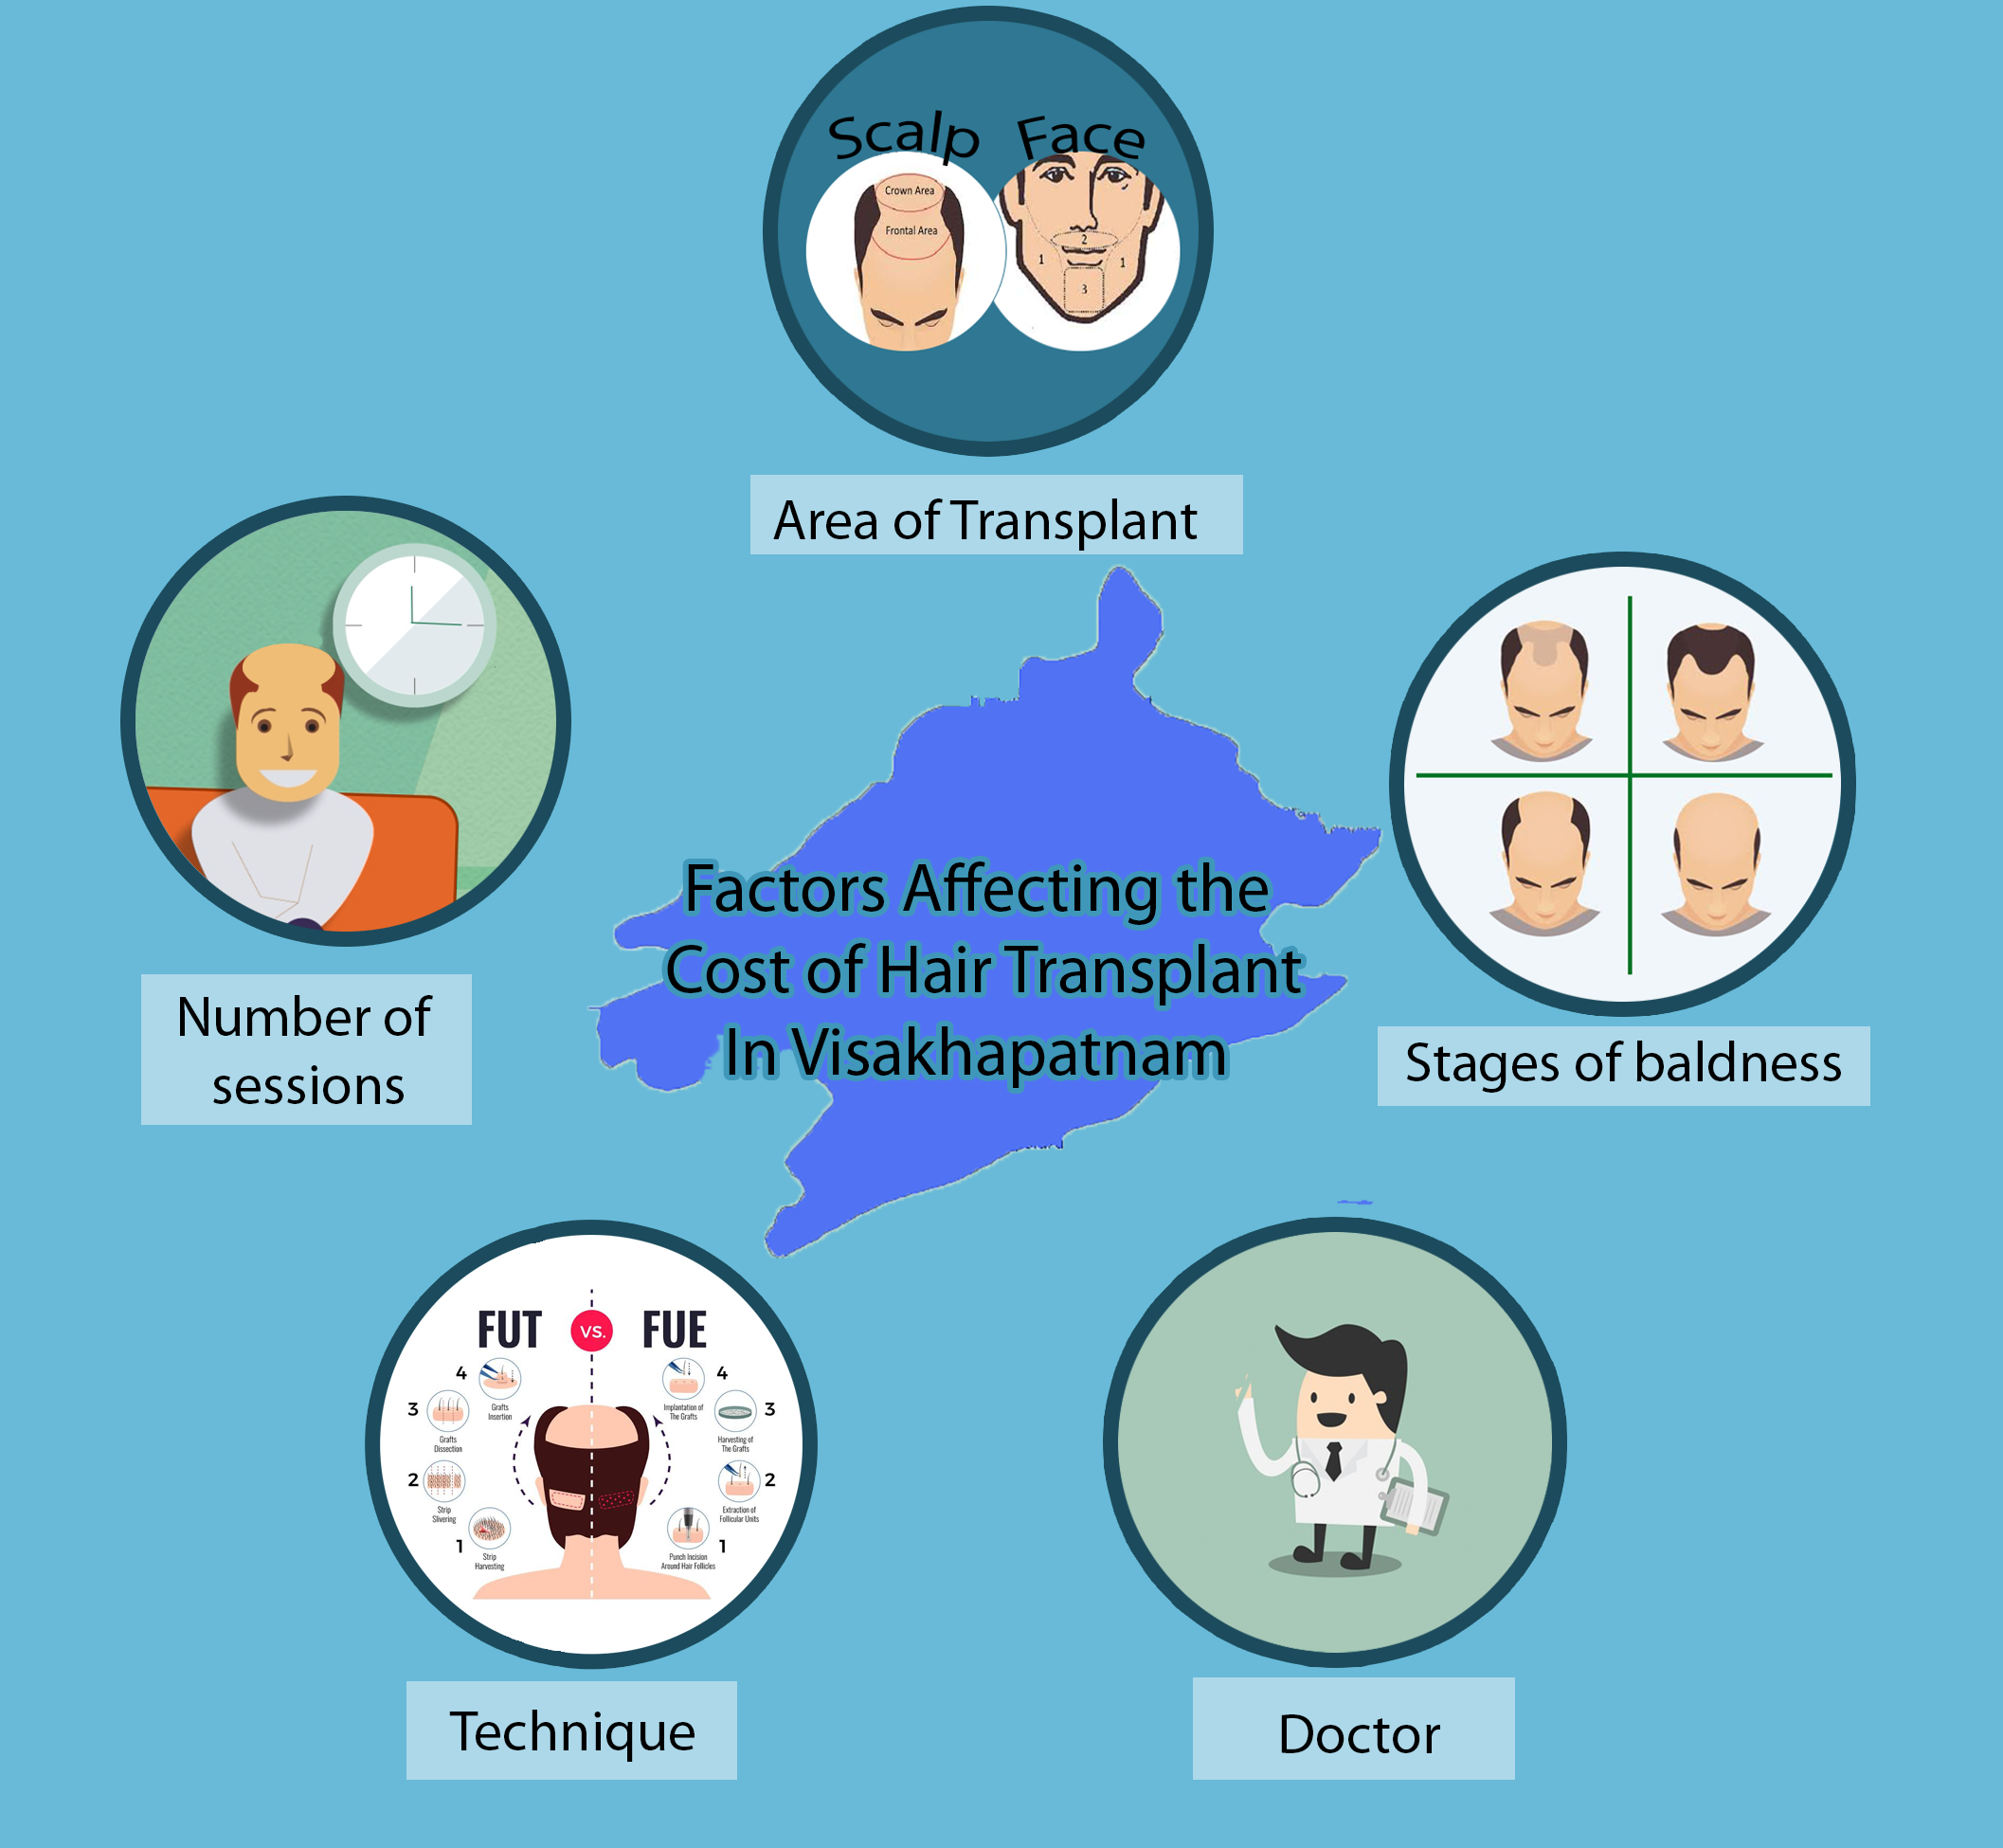 Factors that affect the cost of hair transplant